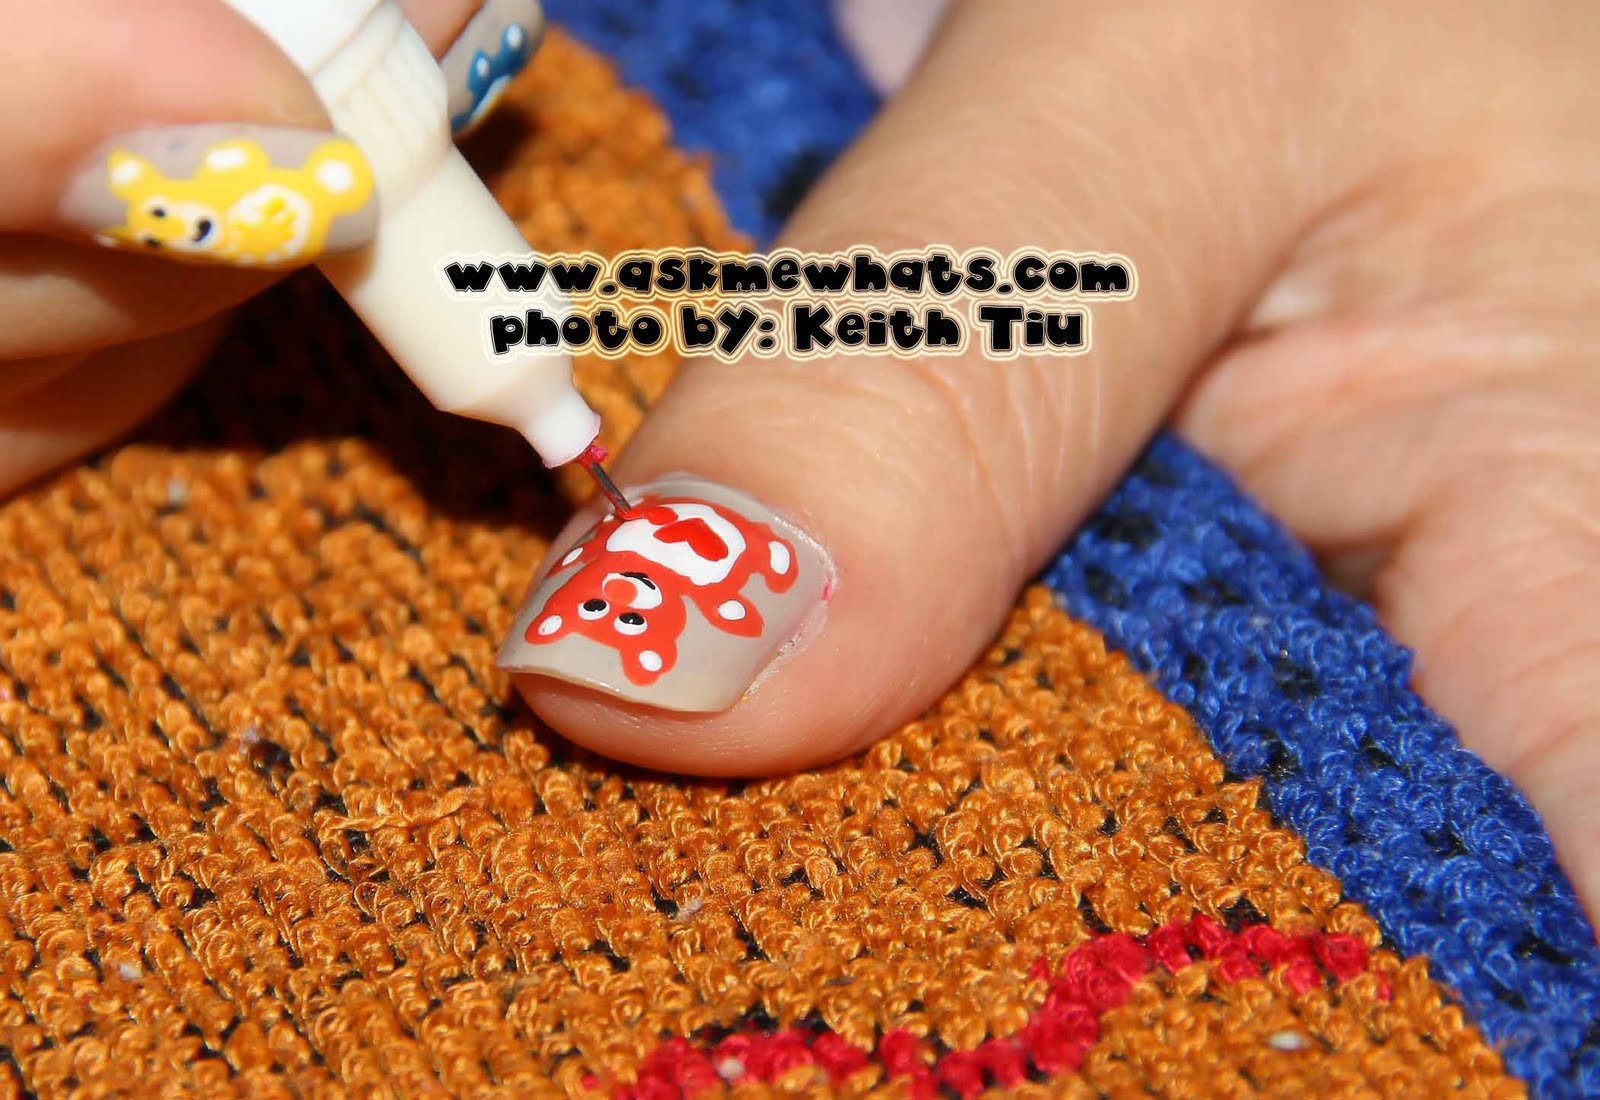 Nail Art Ideas 2 Way Nail Art Pens Pictures Of Nail Art Design Ideas